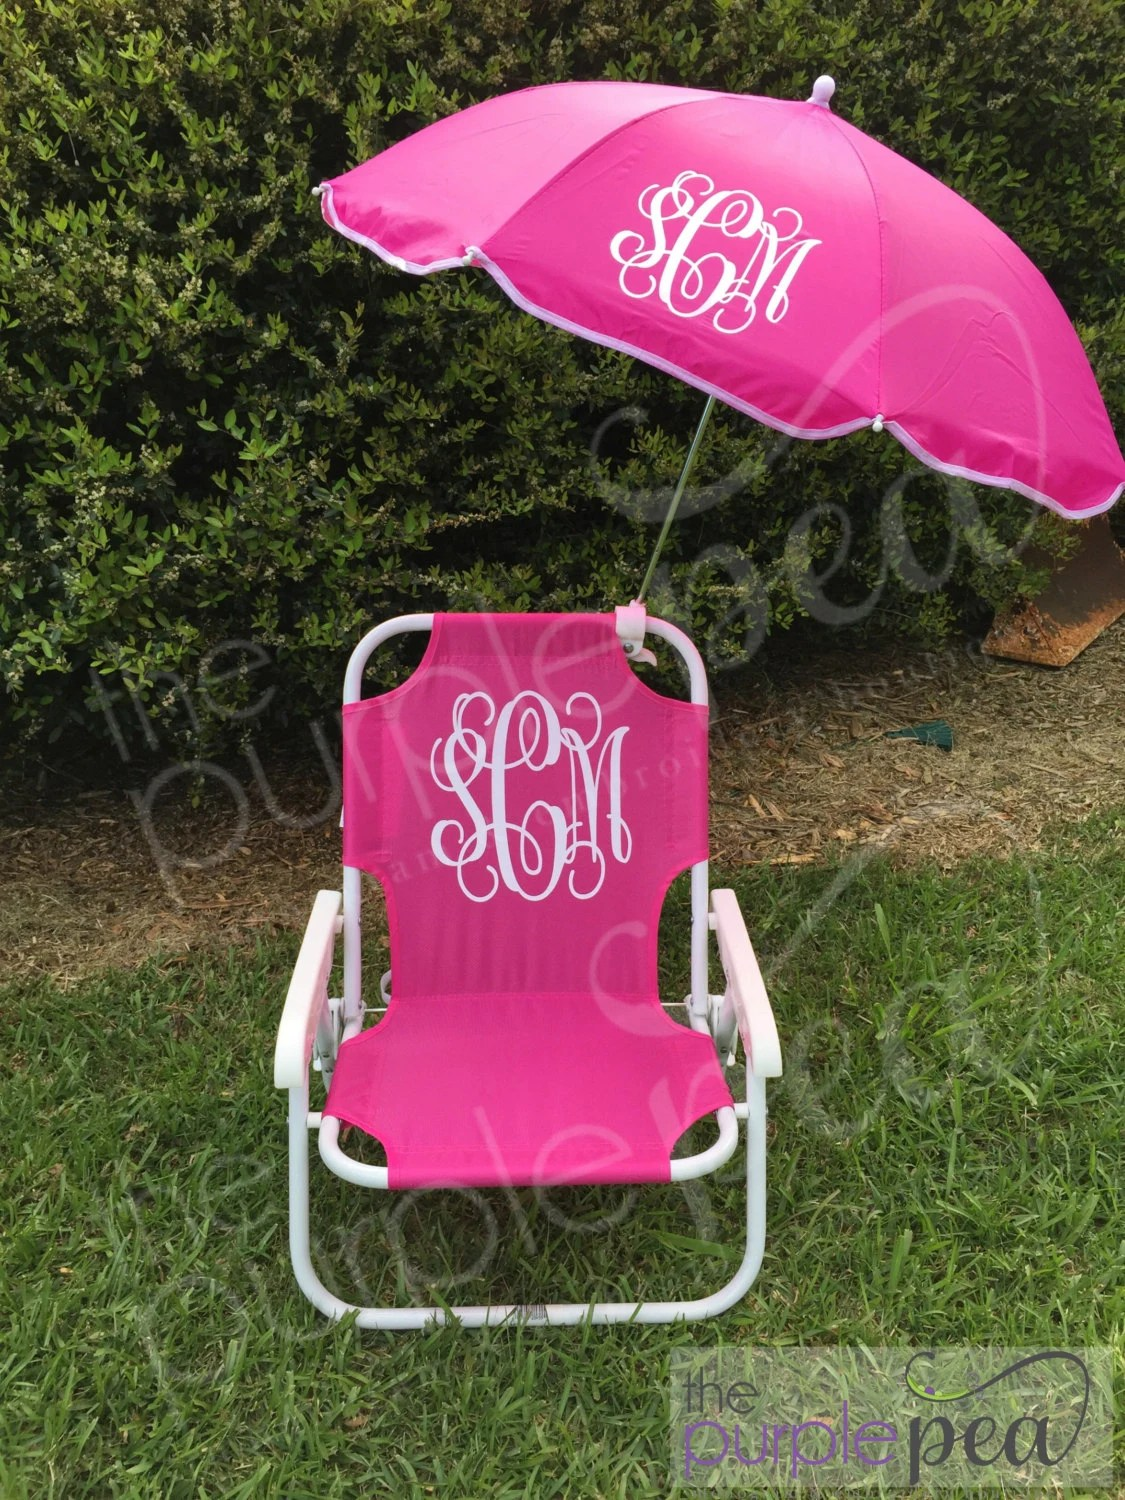 Chair With Umbrella Monogrammed Kid S Beach Chair W Umbrella Monogrammed Chair Childs Beach Chair